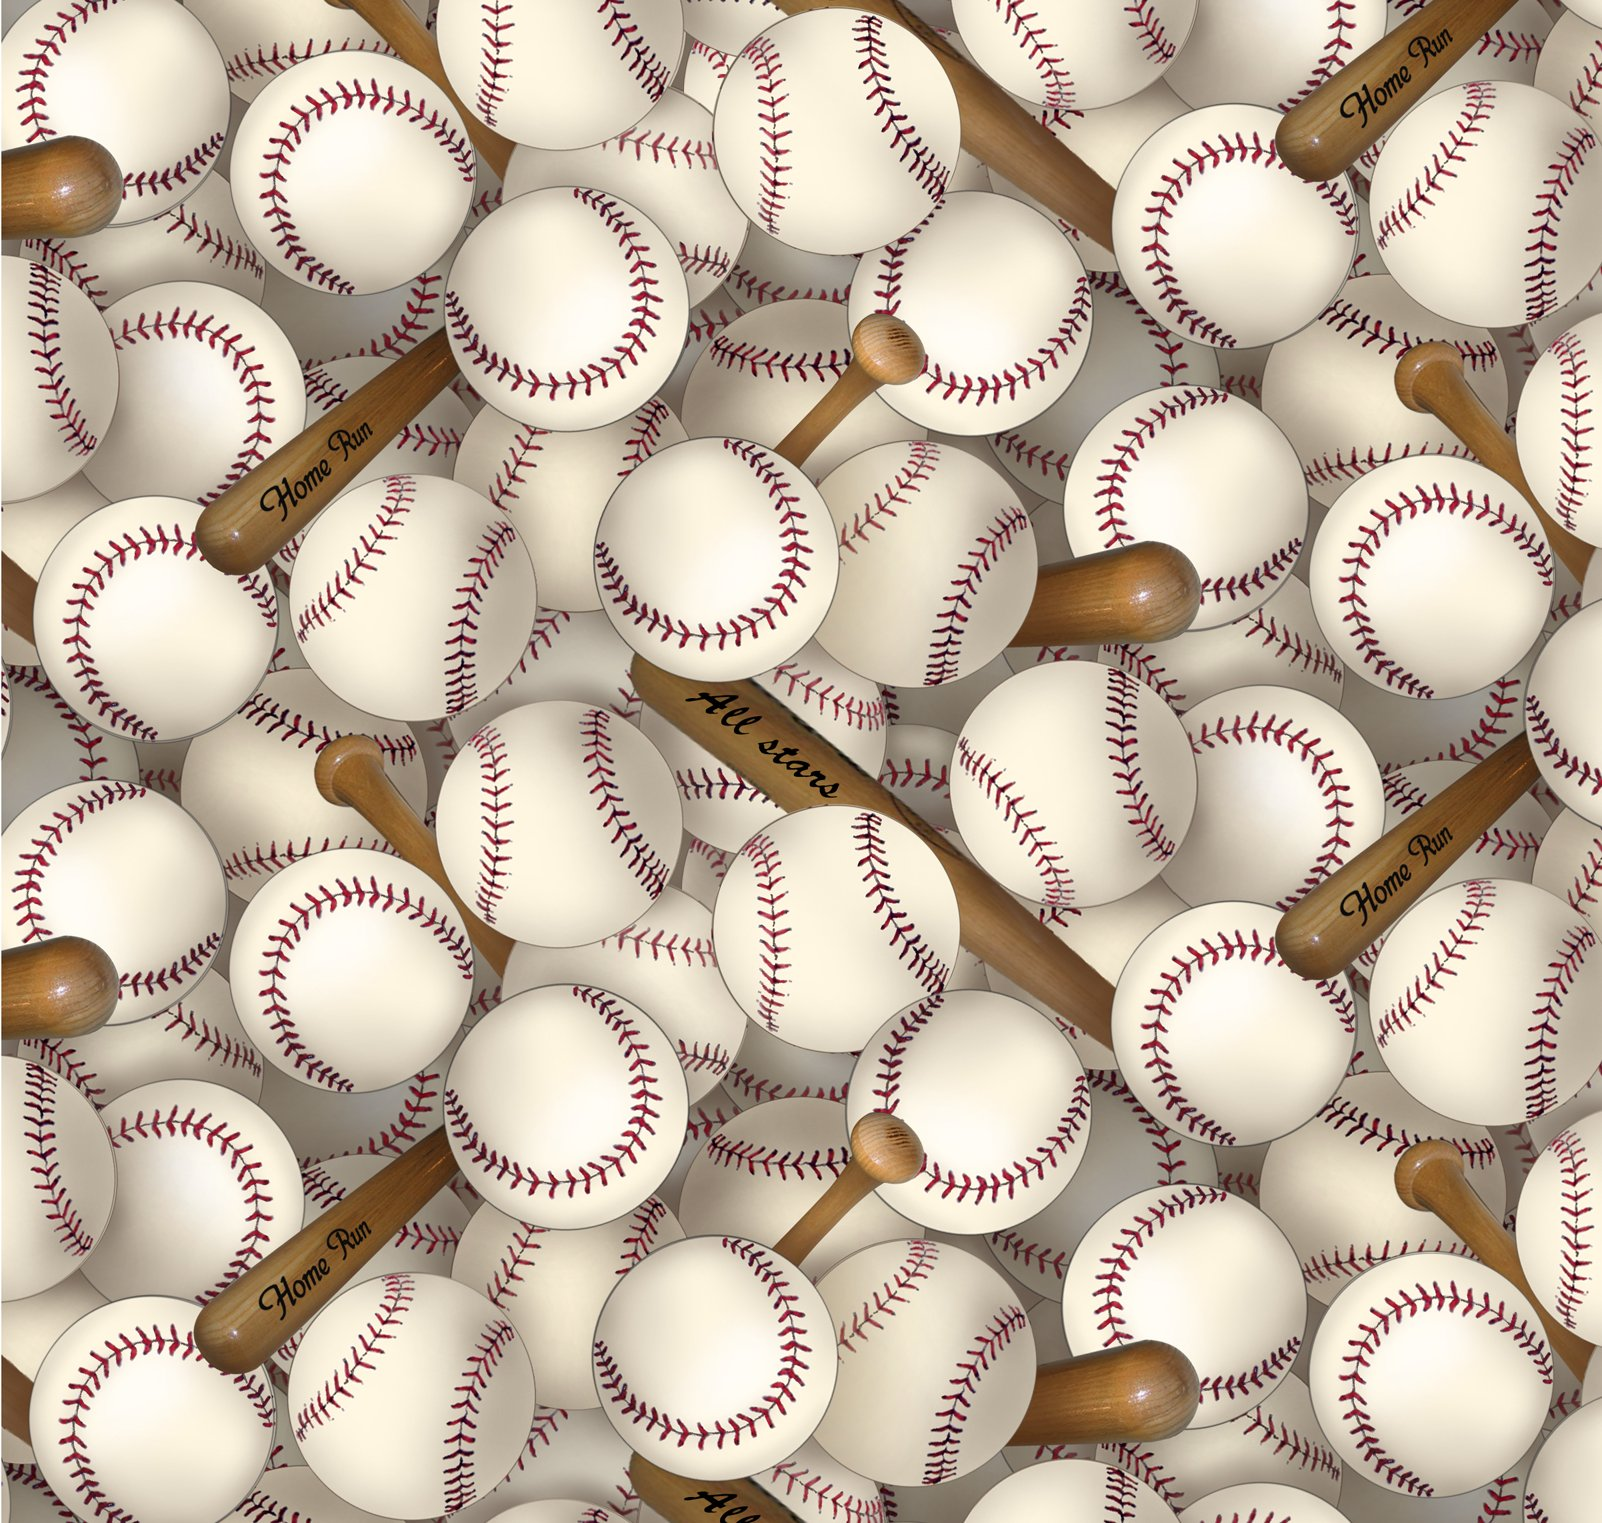 Baseballs Packed 112 White